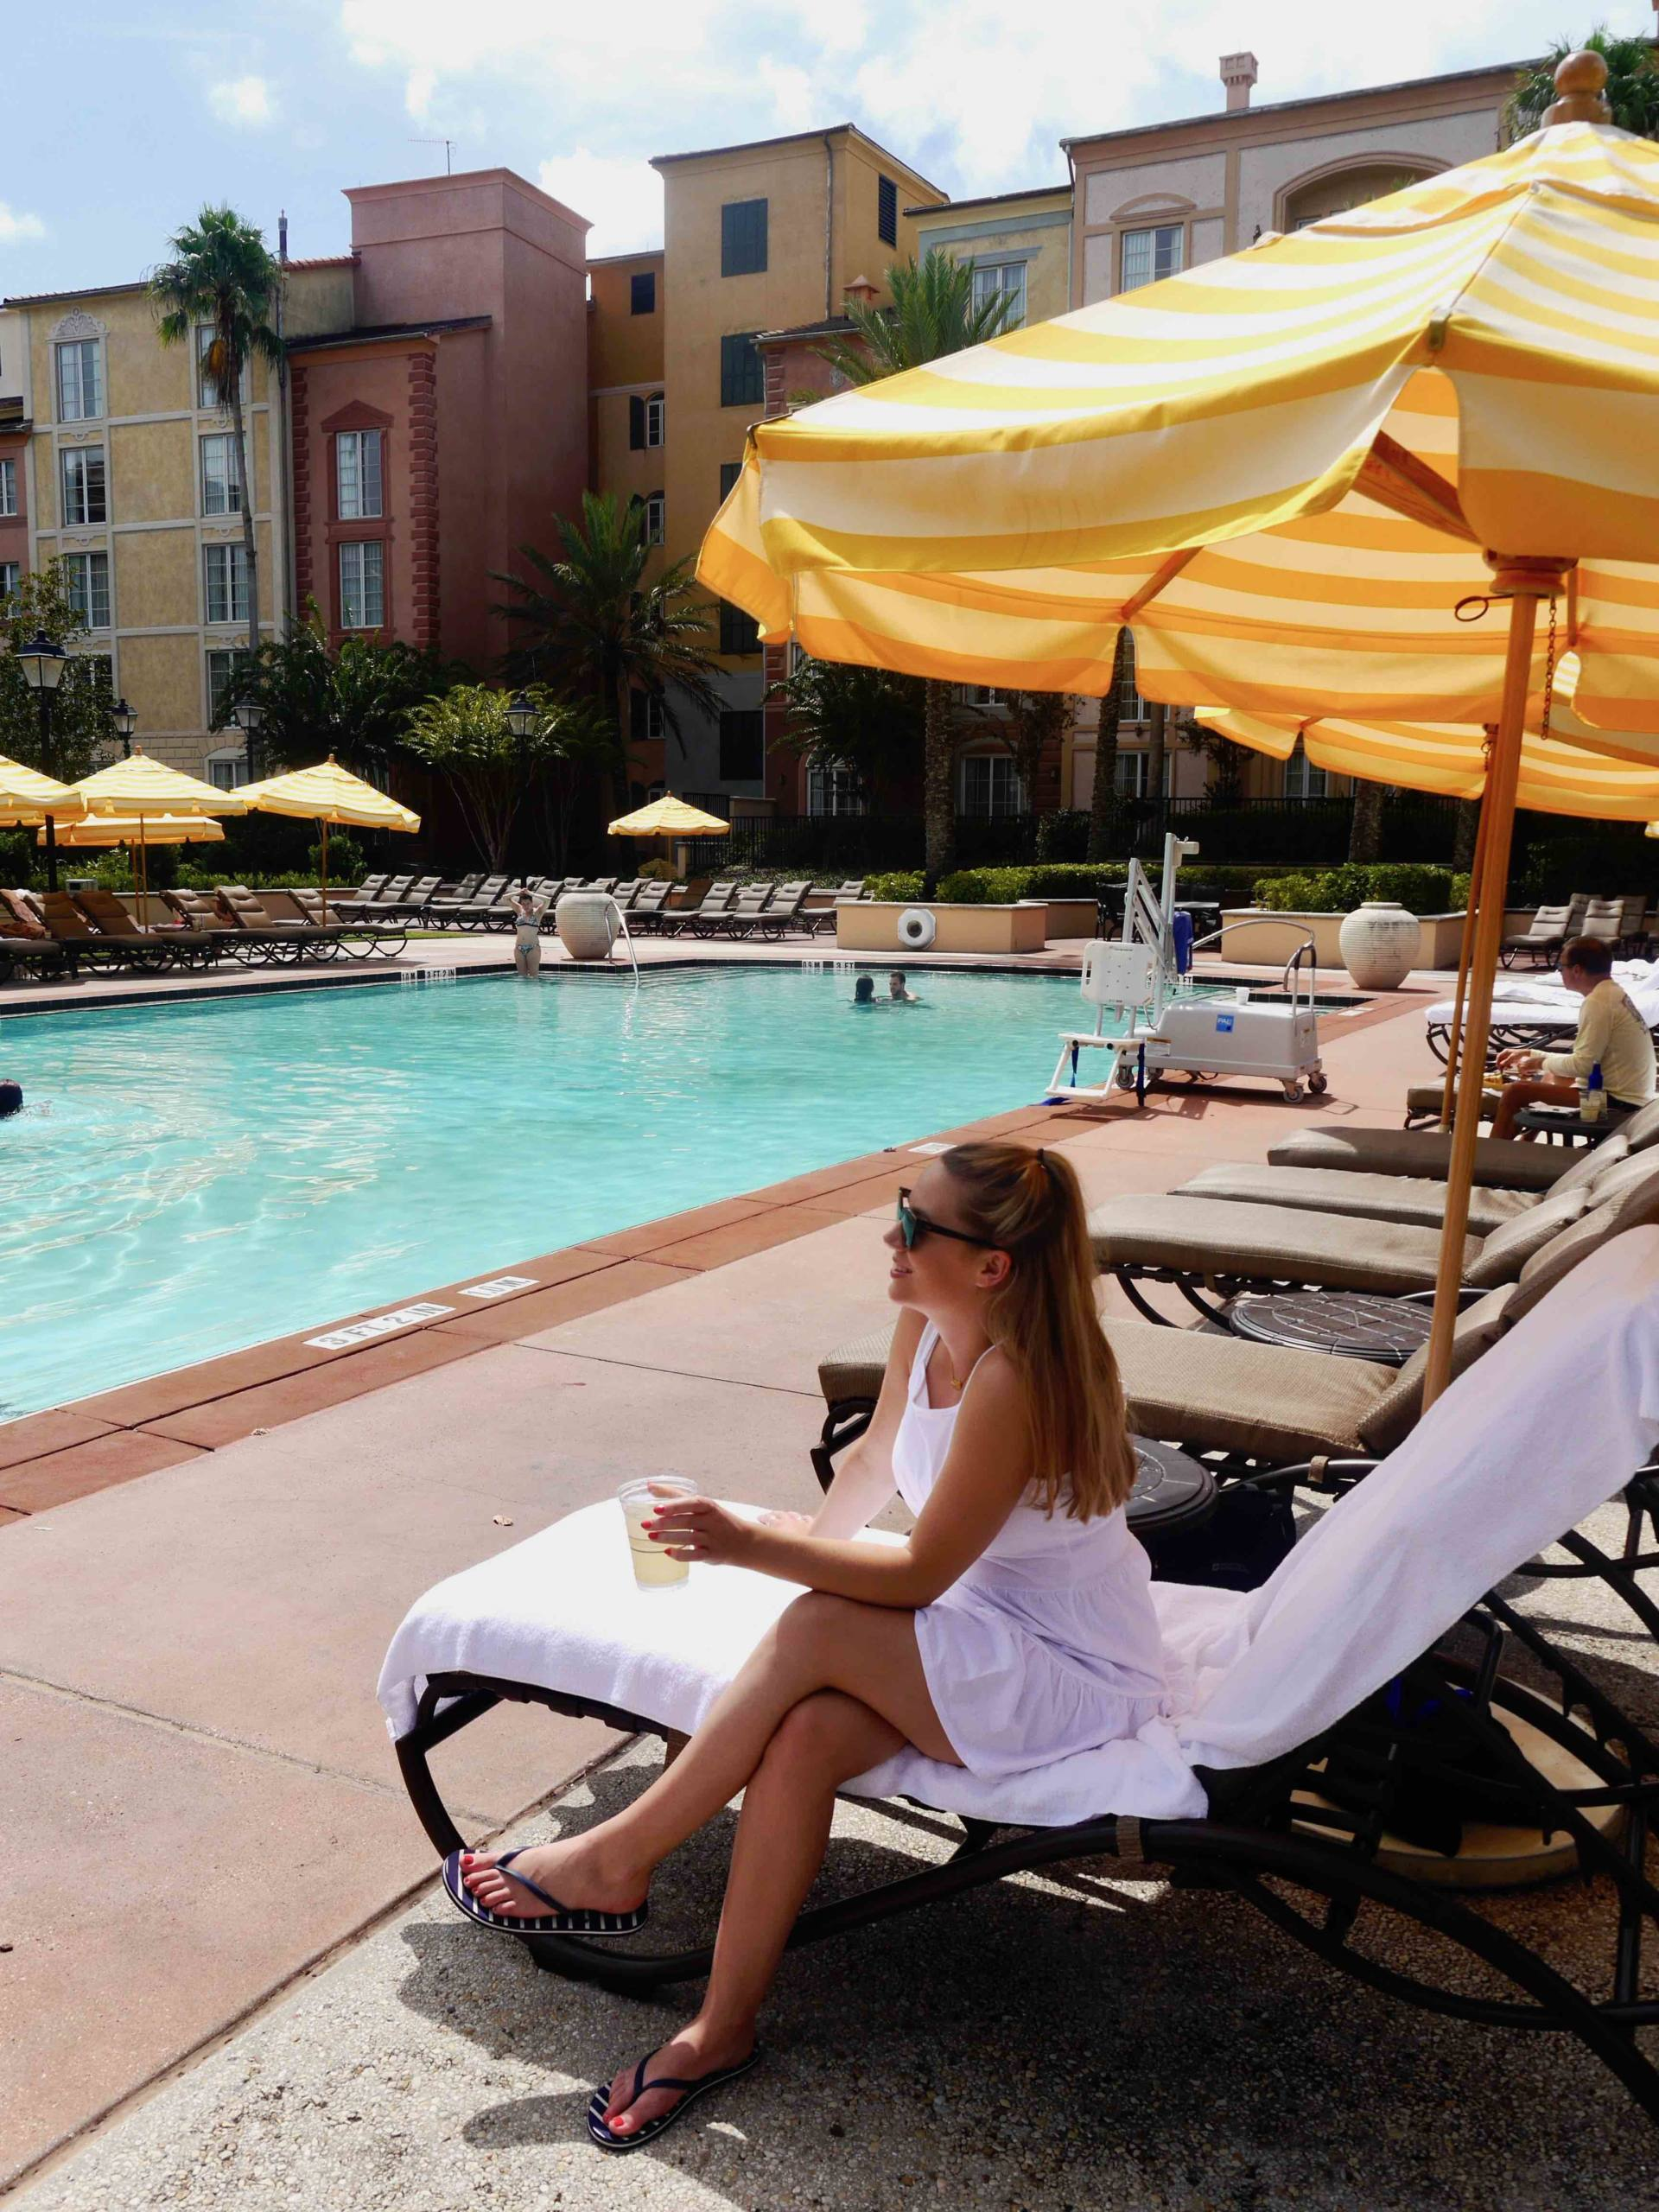 Loews Portofino Bay Adult Only Pool | The Travelista